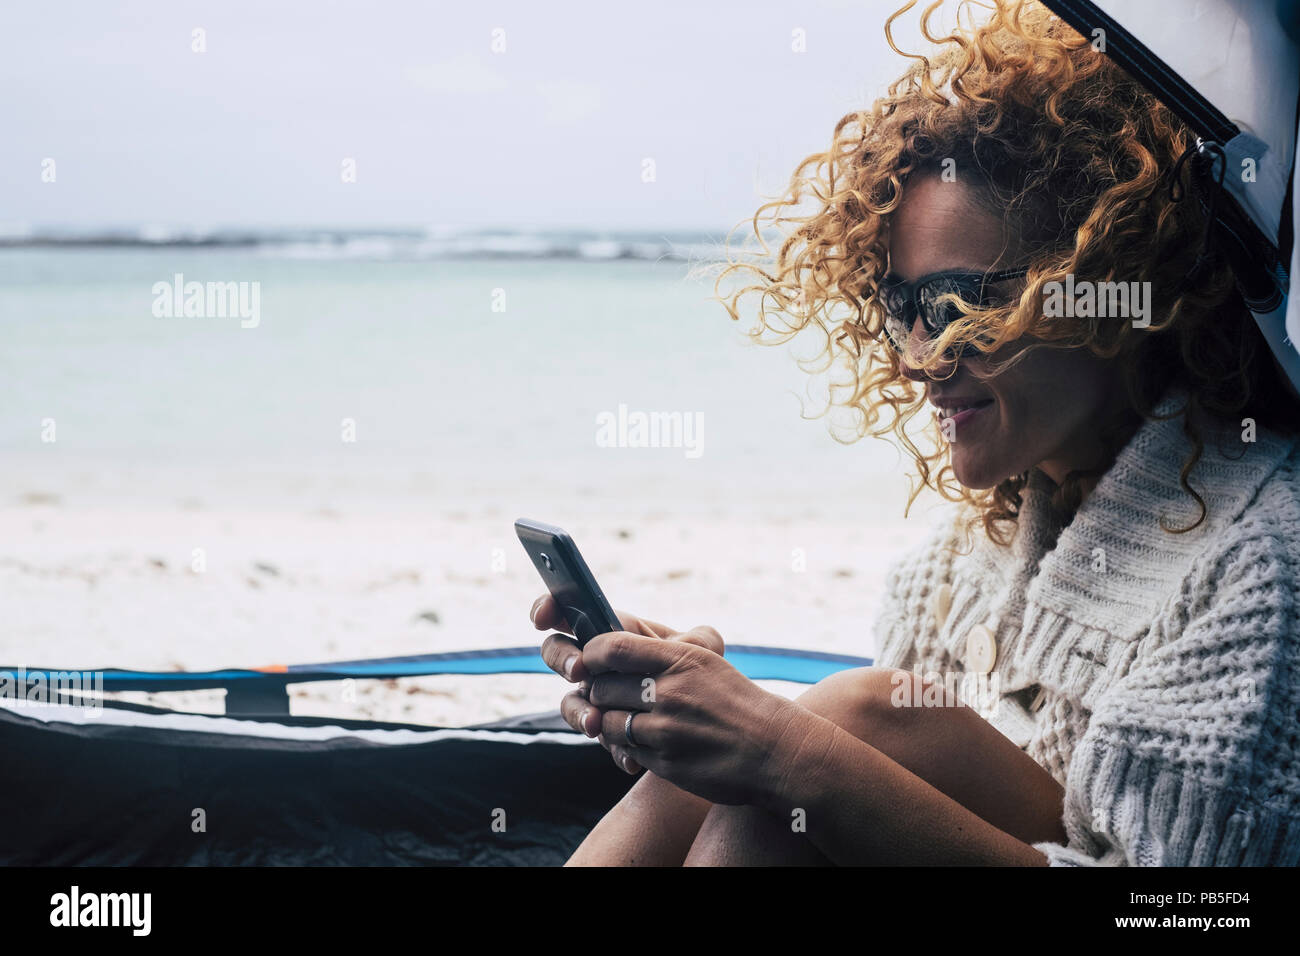 cheerful traveler lady with curly hair in the wind write on smartphone enjoyng the tent outdoor at the beach. ocean in background. paradise vacation c - Stock Image